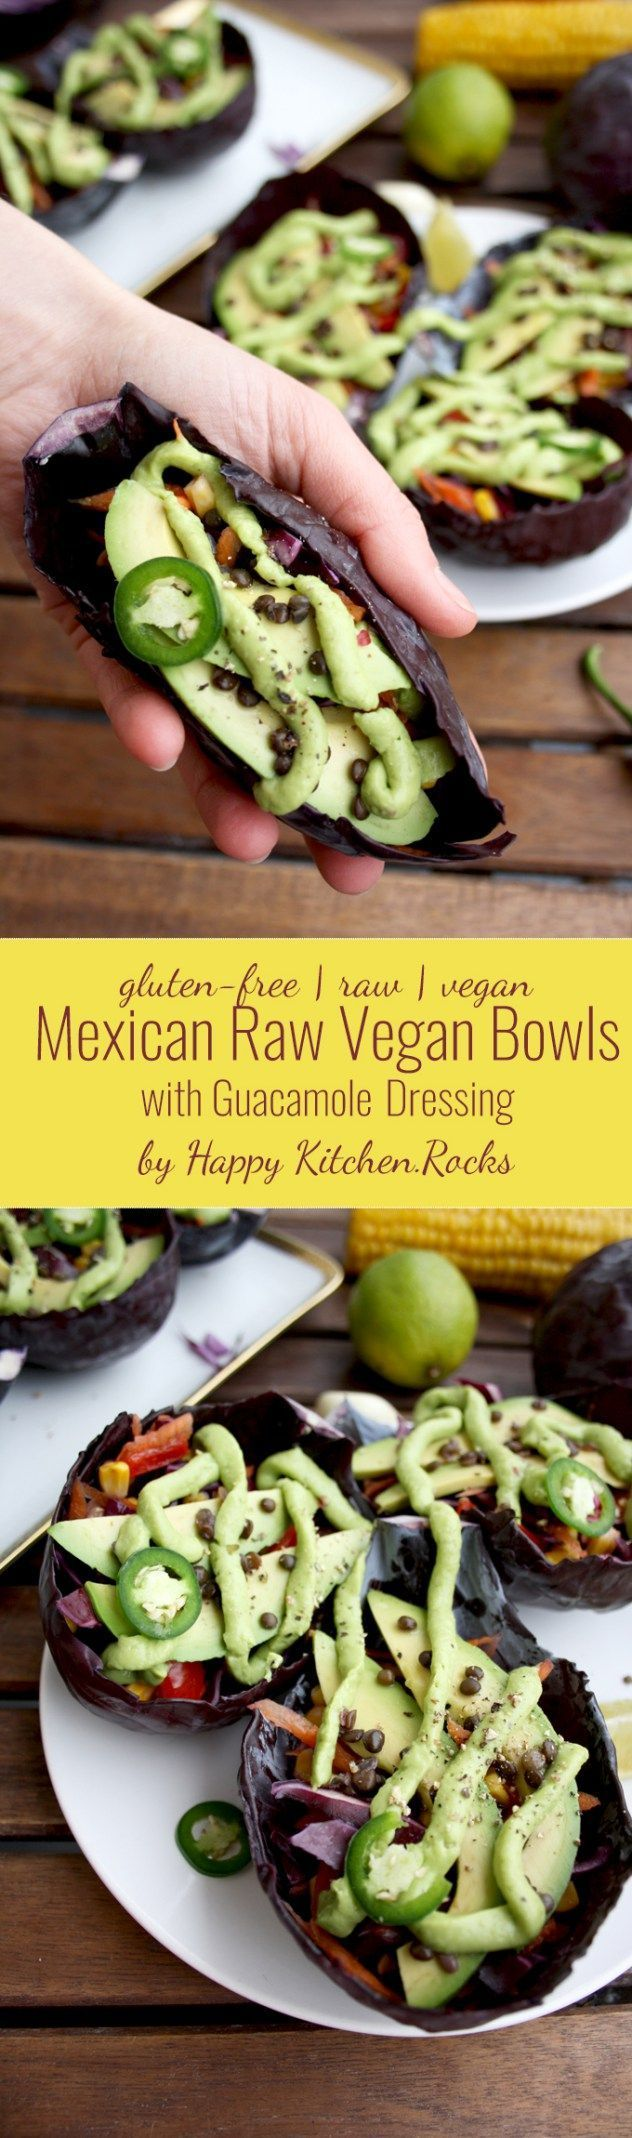 220 best raw vegan images on pinterest healthy food recipes and mexican raw vegan bowls with guacamole dressing served in cabbage leaves easy and healthy mess forumfinder Gallery